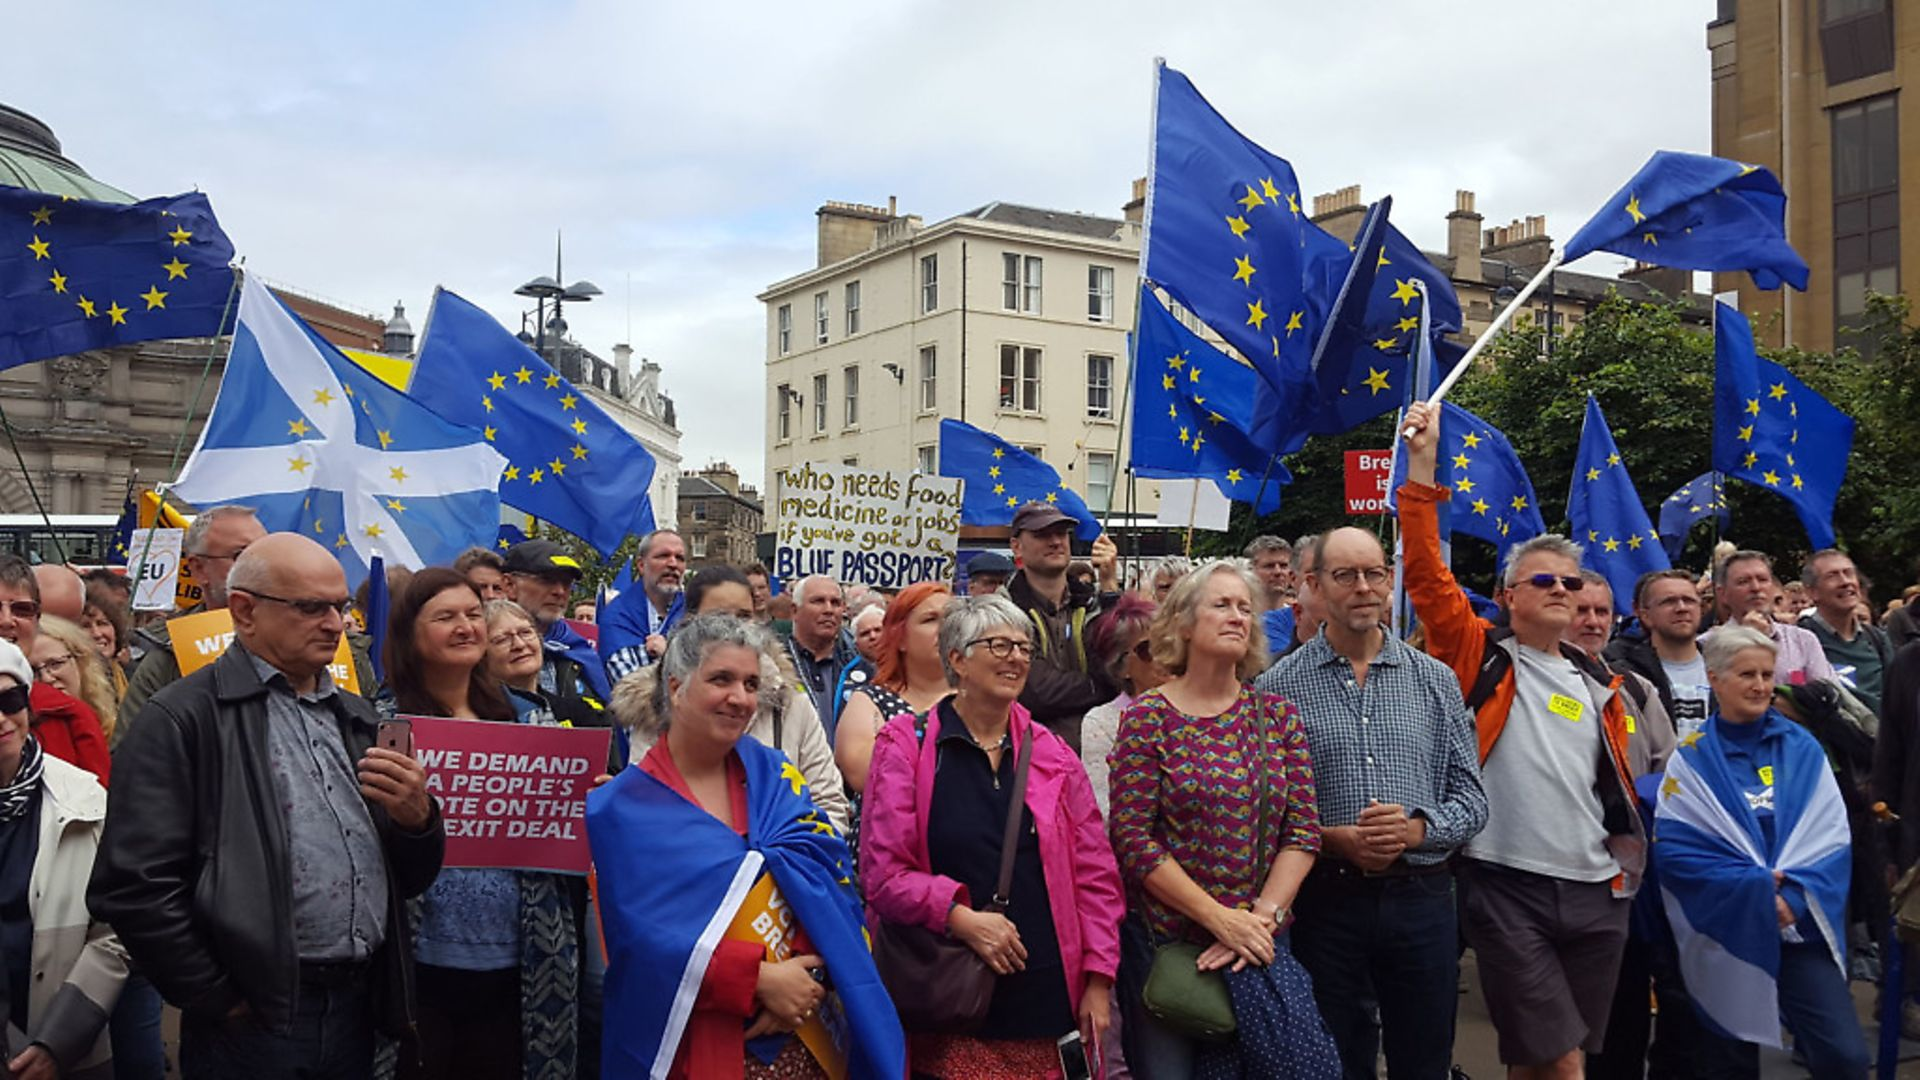 Remain is a movement entrenched across the UK. Photograph: Hilary Duncanson/PA Wire - Credit: PA